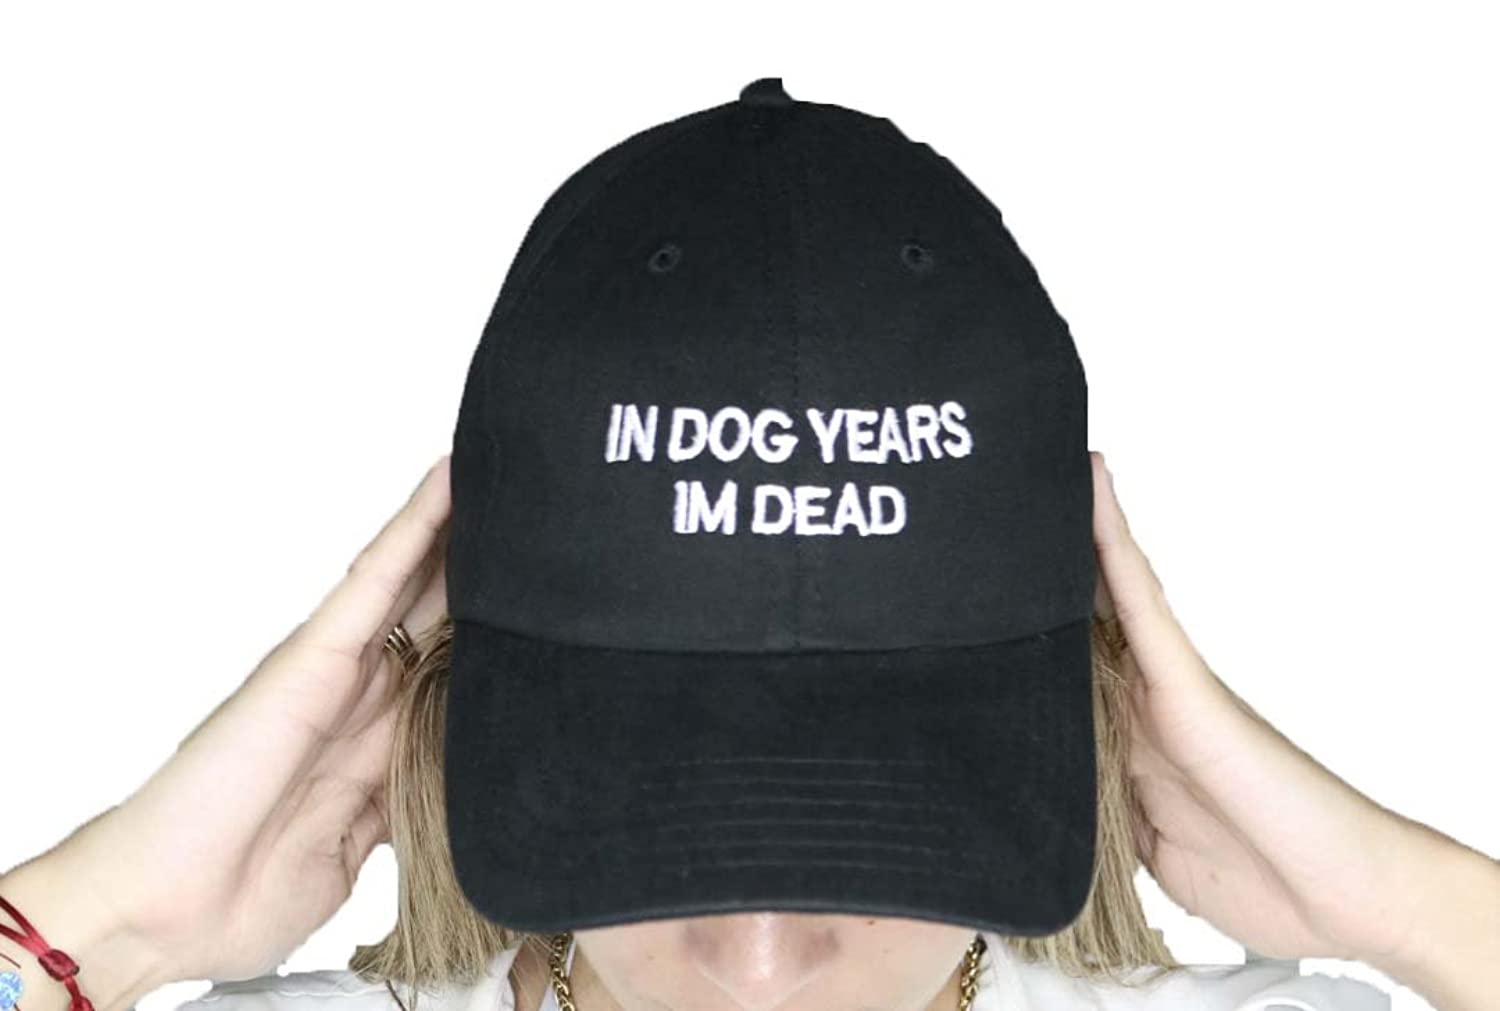 In dog years im dead black baseball cap with white embroidery on the front